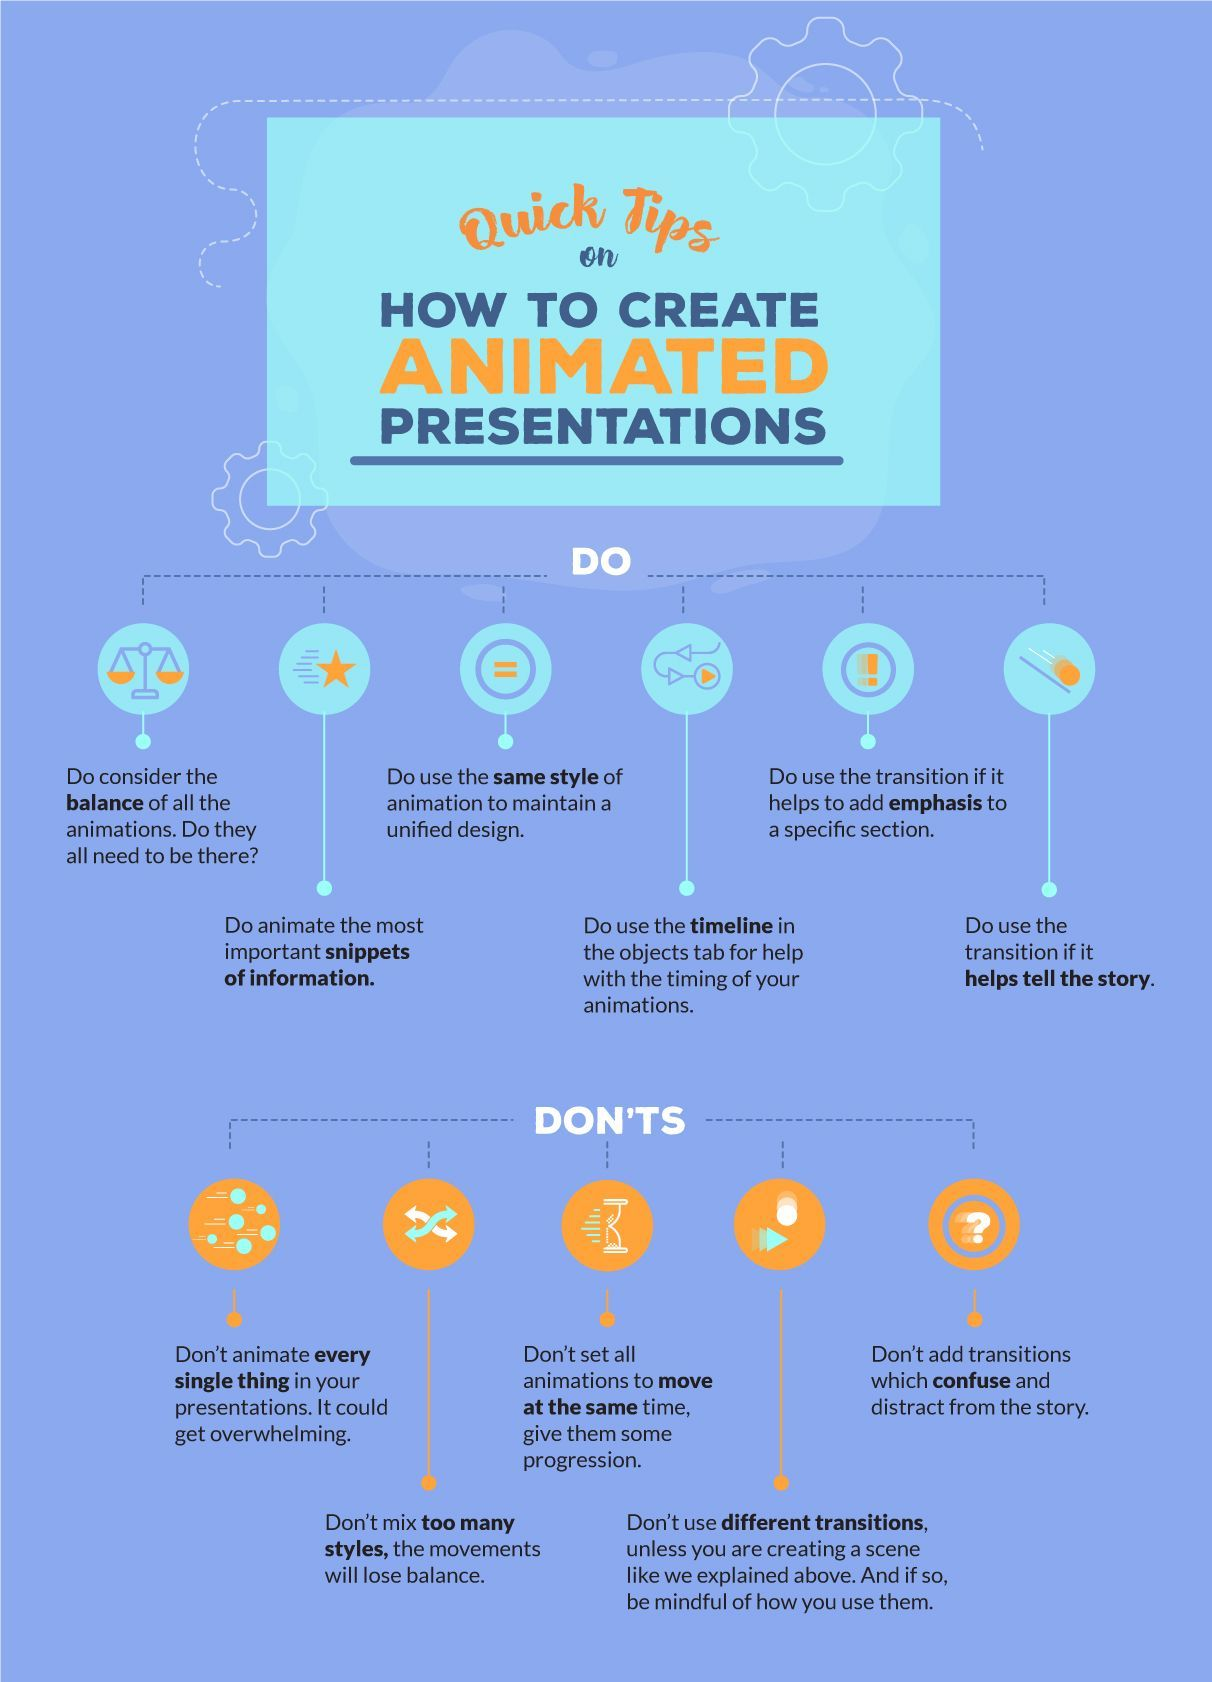 Quick Tips for Using Animation in Your Presentations